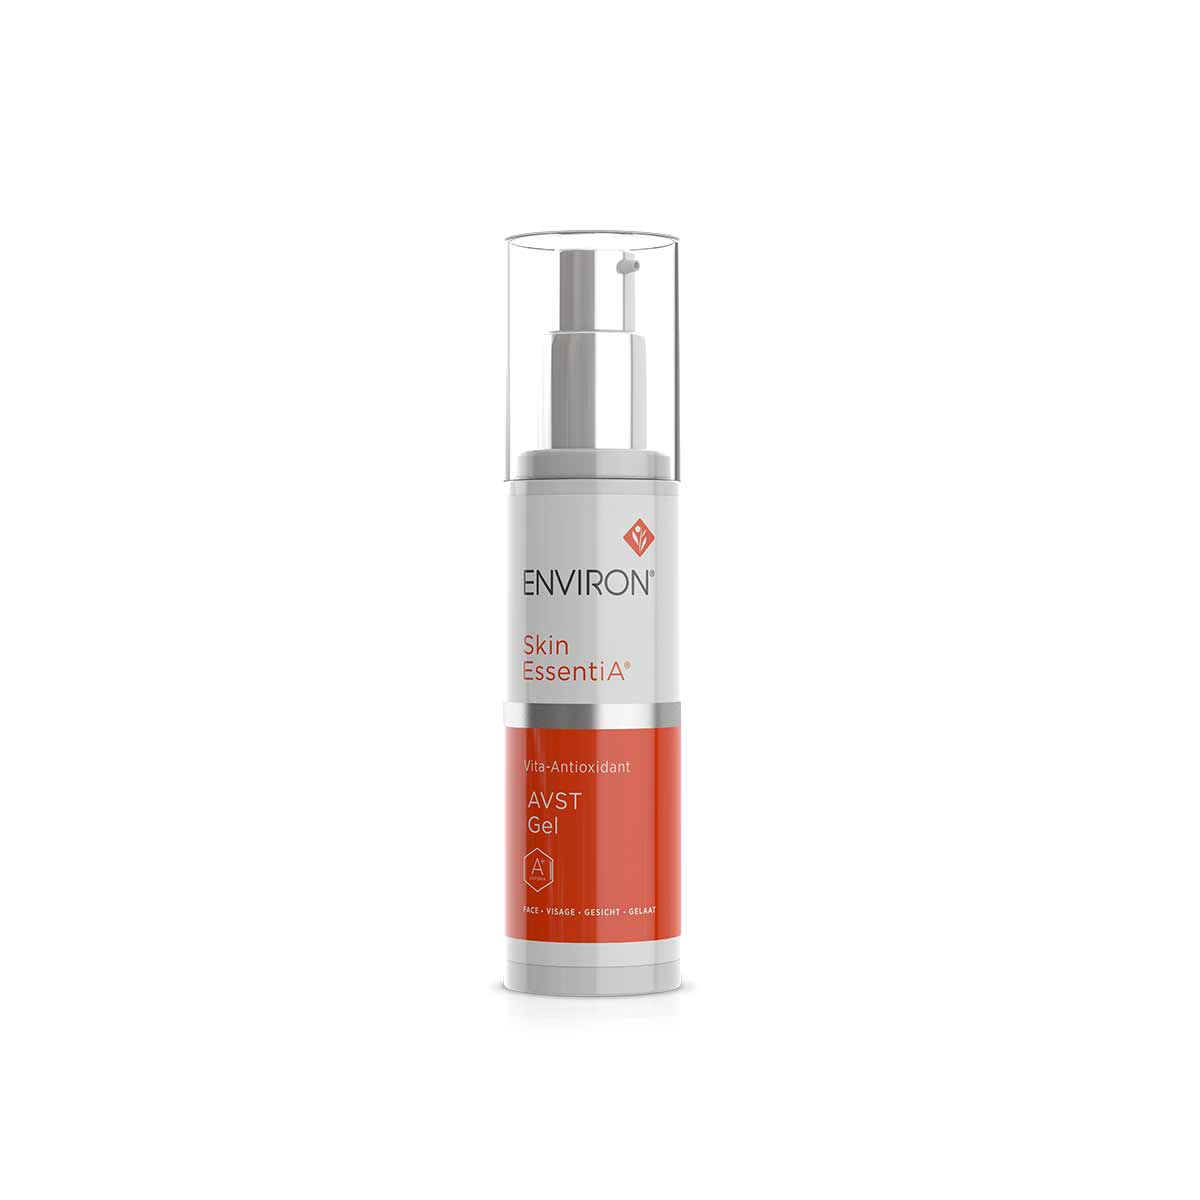 Vita Anti-oxidant AVST Gel 50ml